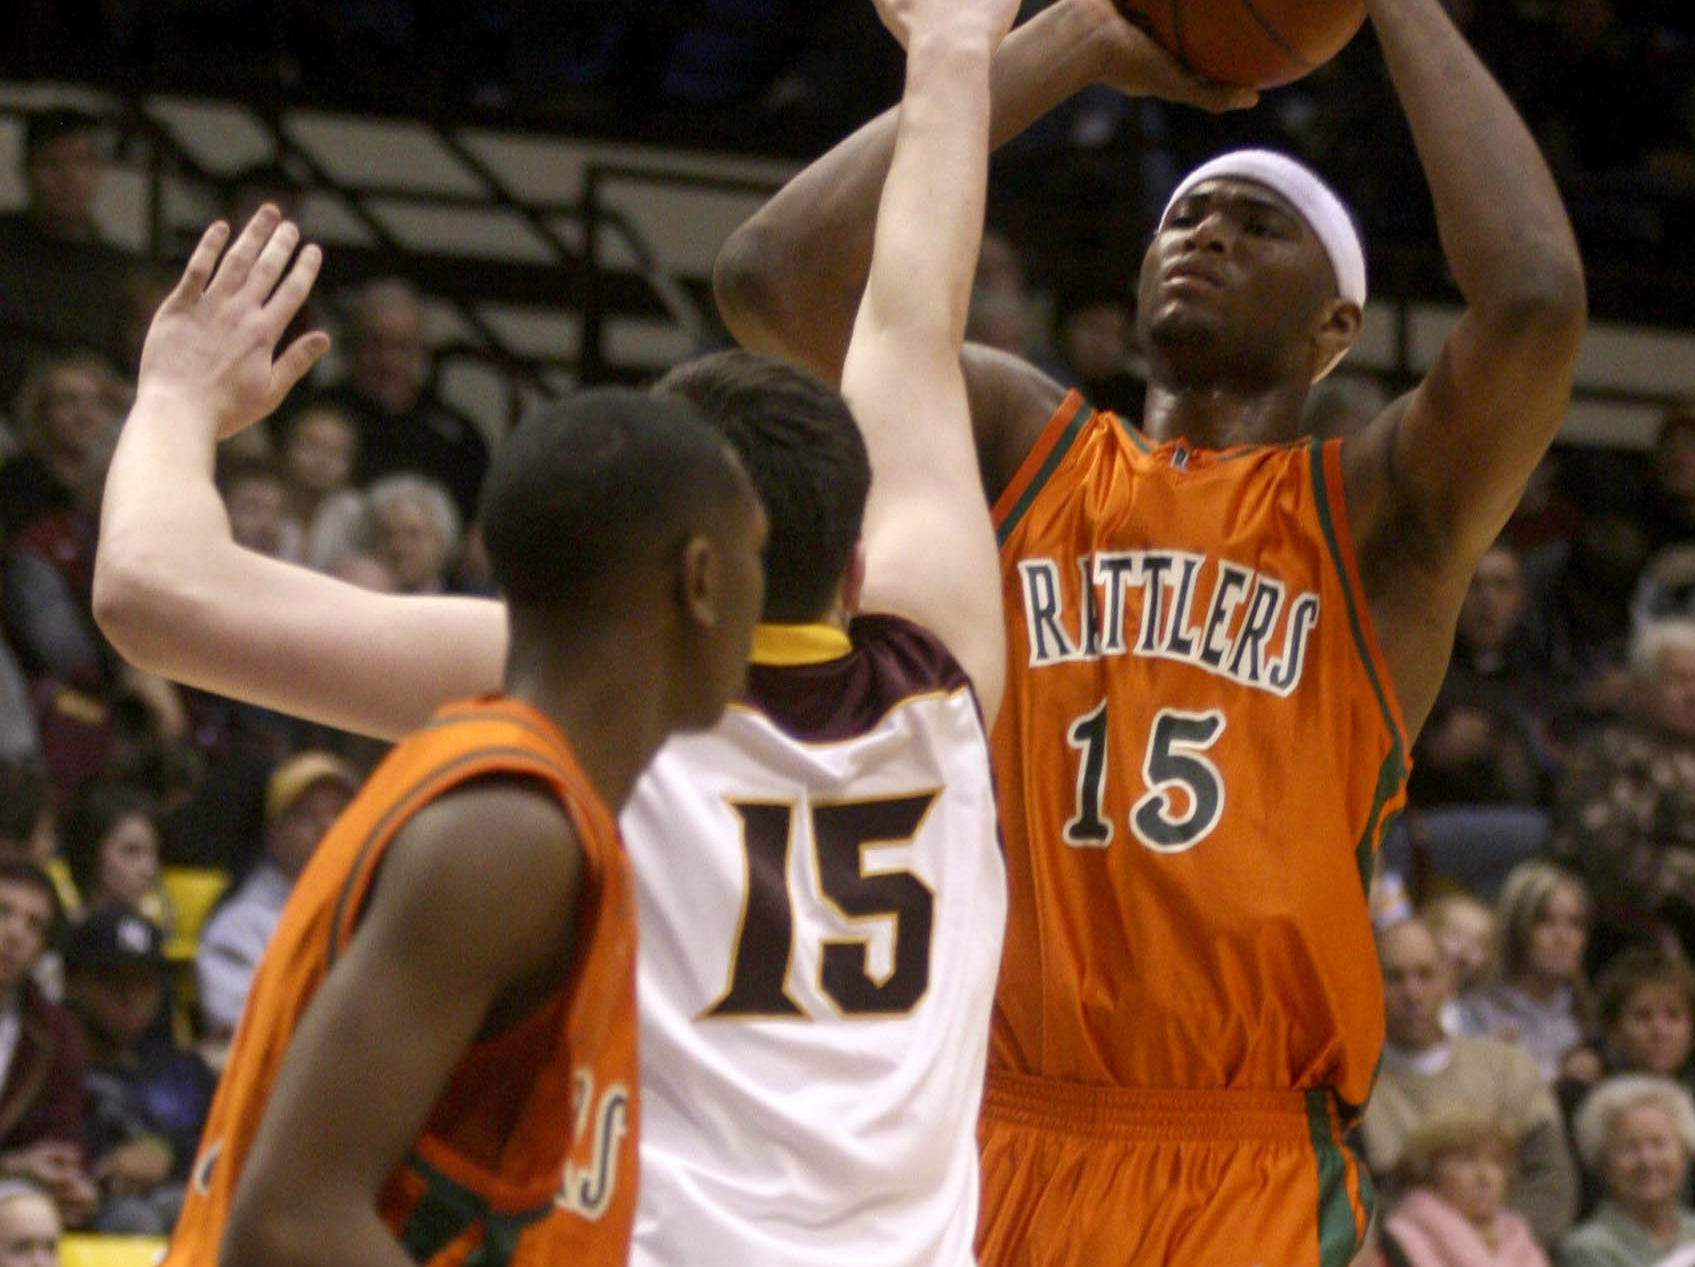 Leflore's DeMarcus Cousins shoots over Christ the King's Dominyka Milka during a past Tournament of Champions game.